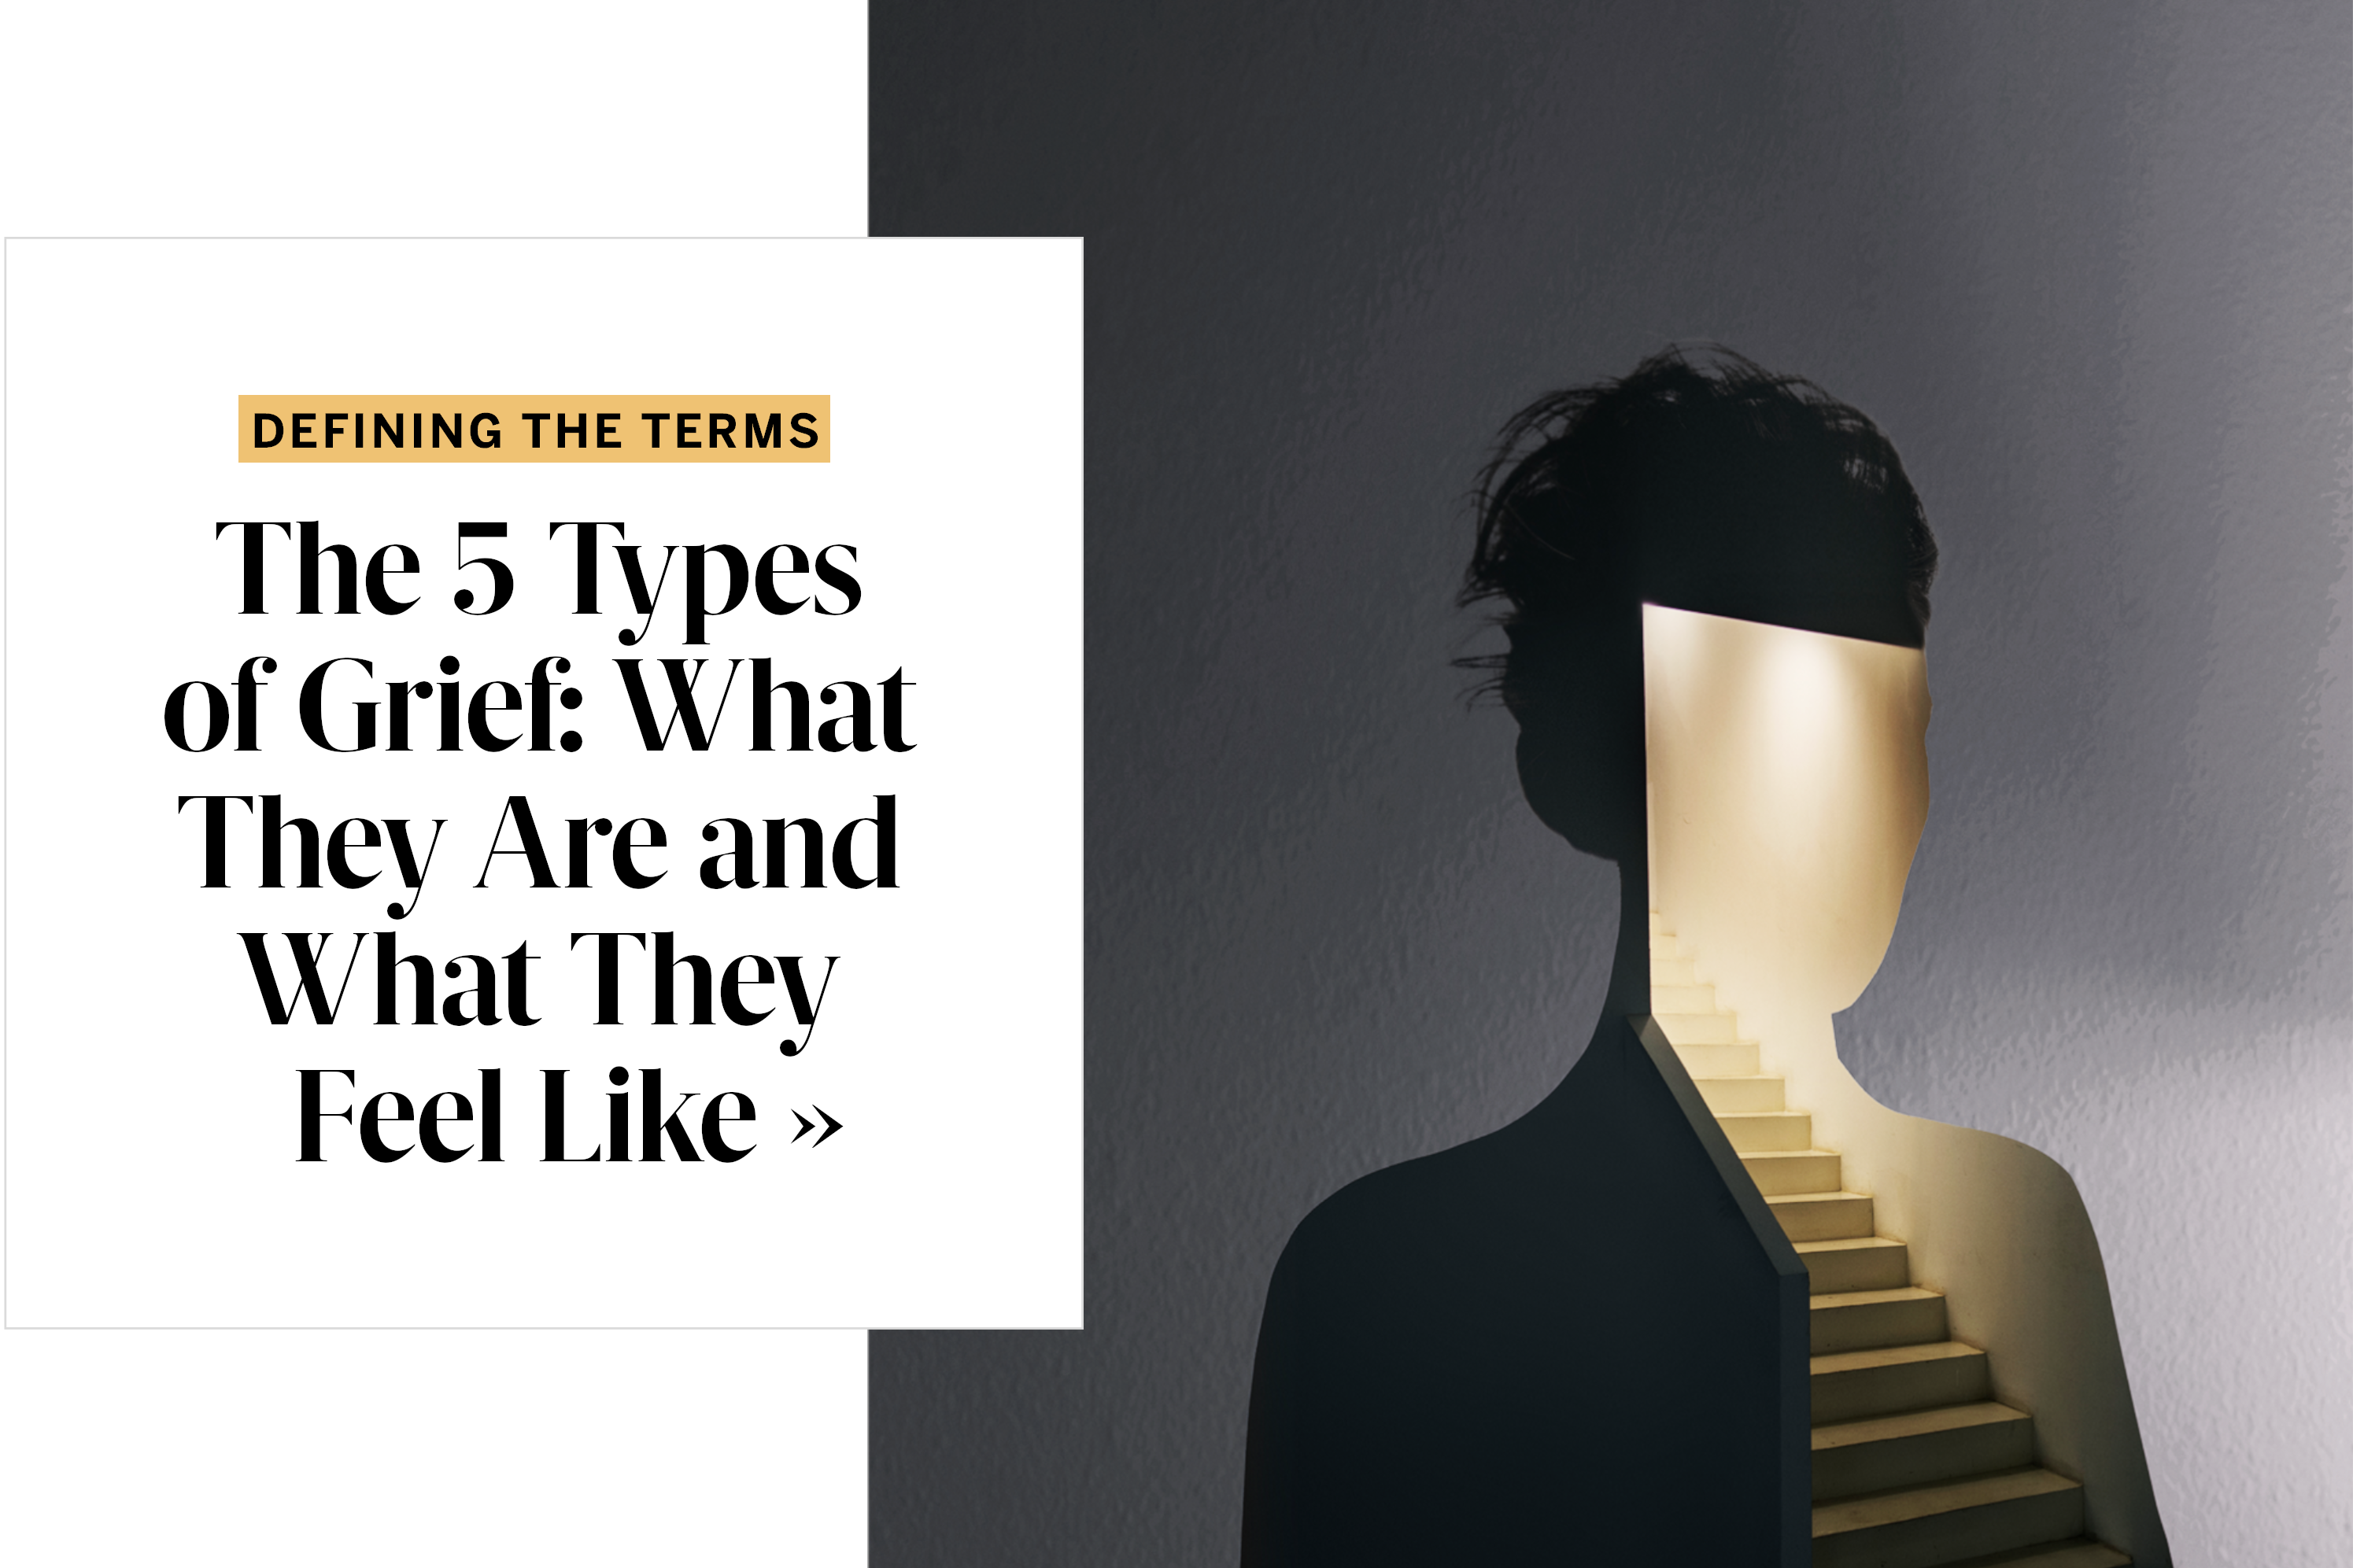 The 5 Types of Grief: What They Are and What They Feel Like